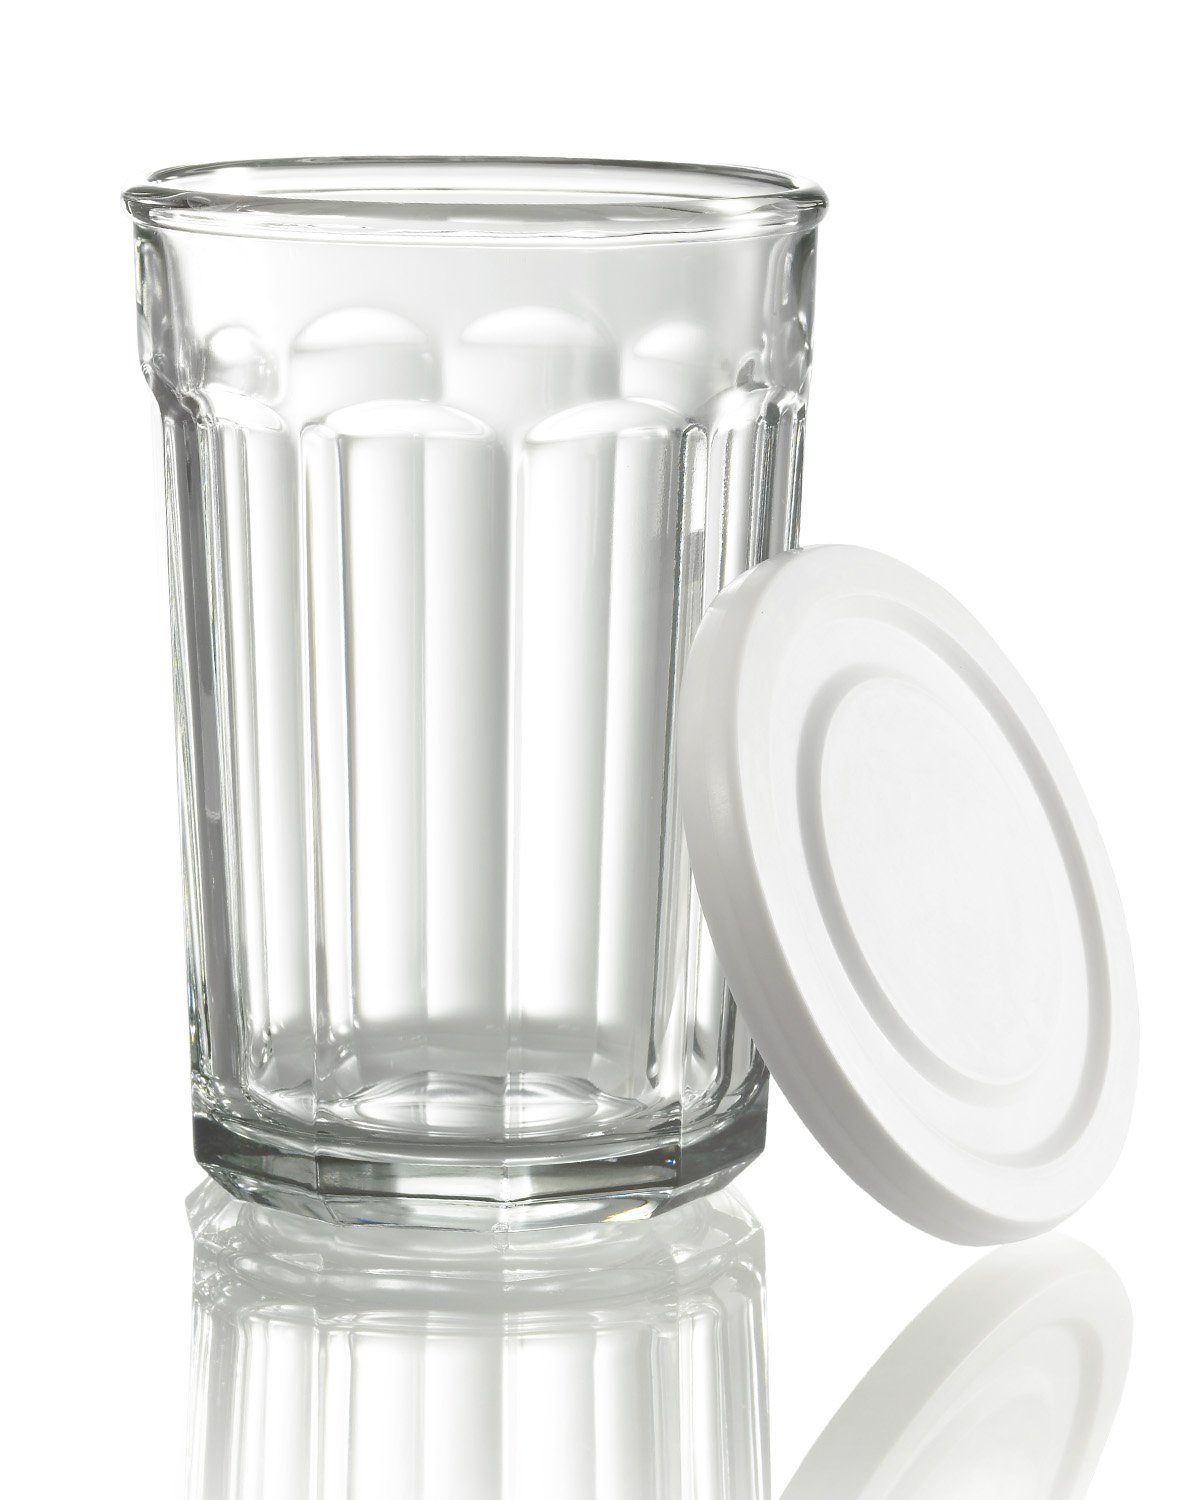 Arc International Luminarc Working Glass Storage Jar/Cooler with White Lid, 21-Ounce, Set of 4